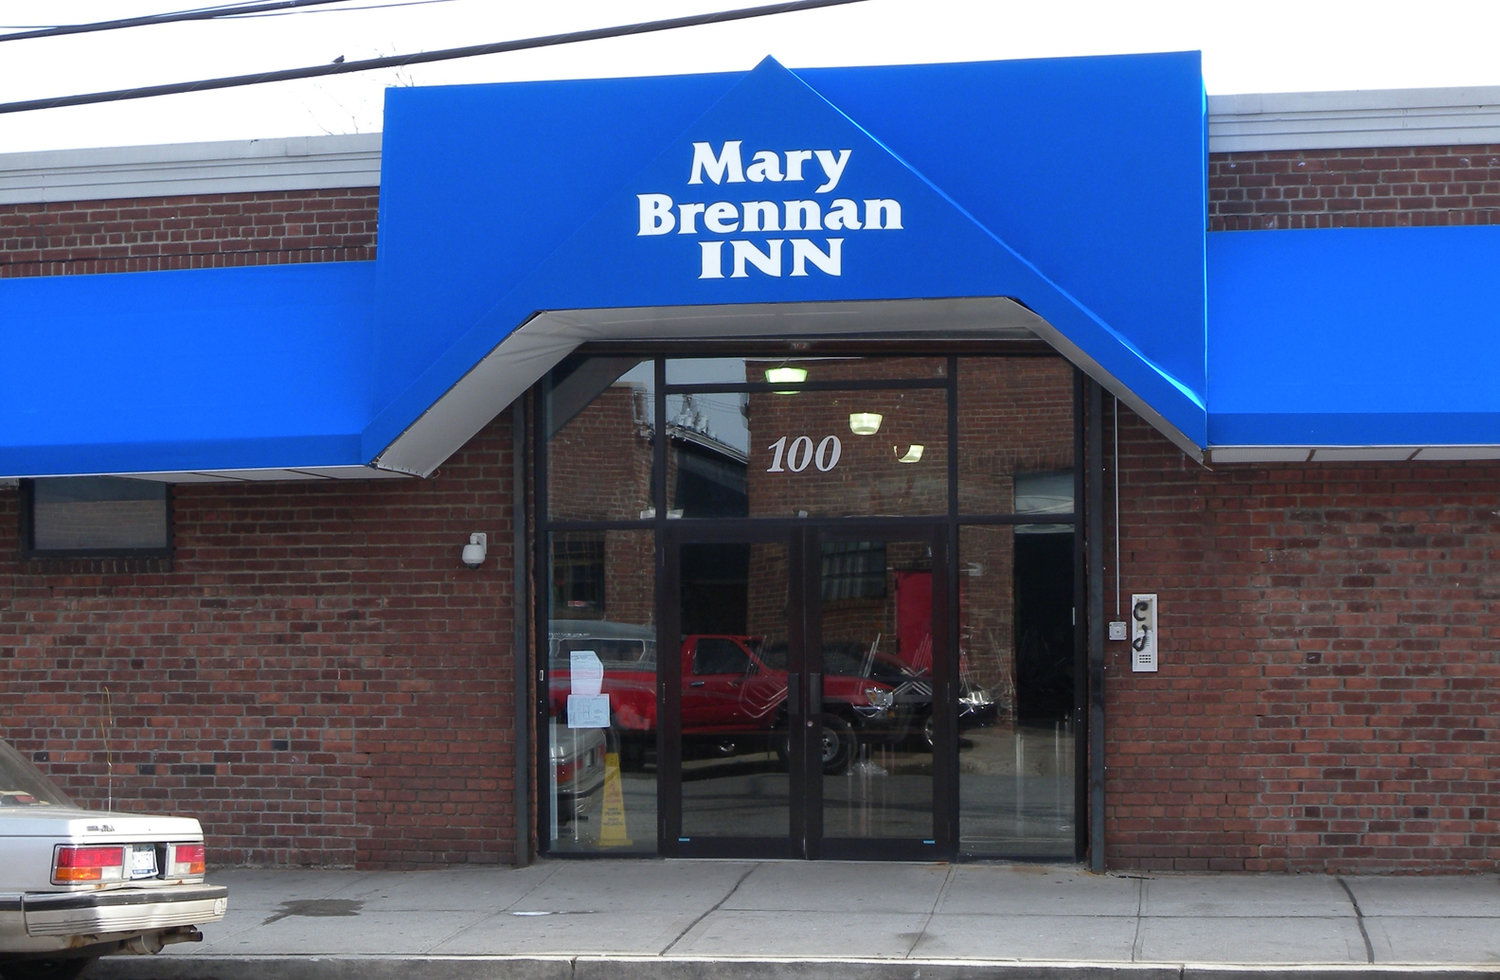 The Mary Brennan INN soup kitchen in Hempstead will hold a contactless Thanksgiving food drive this Saturday.